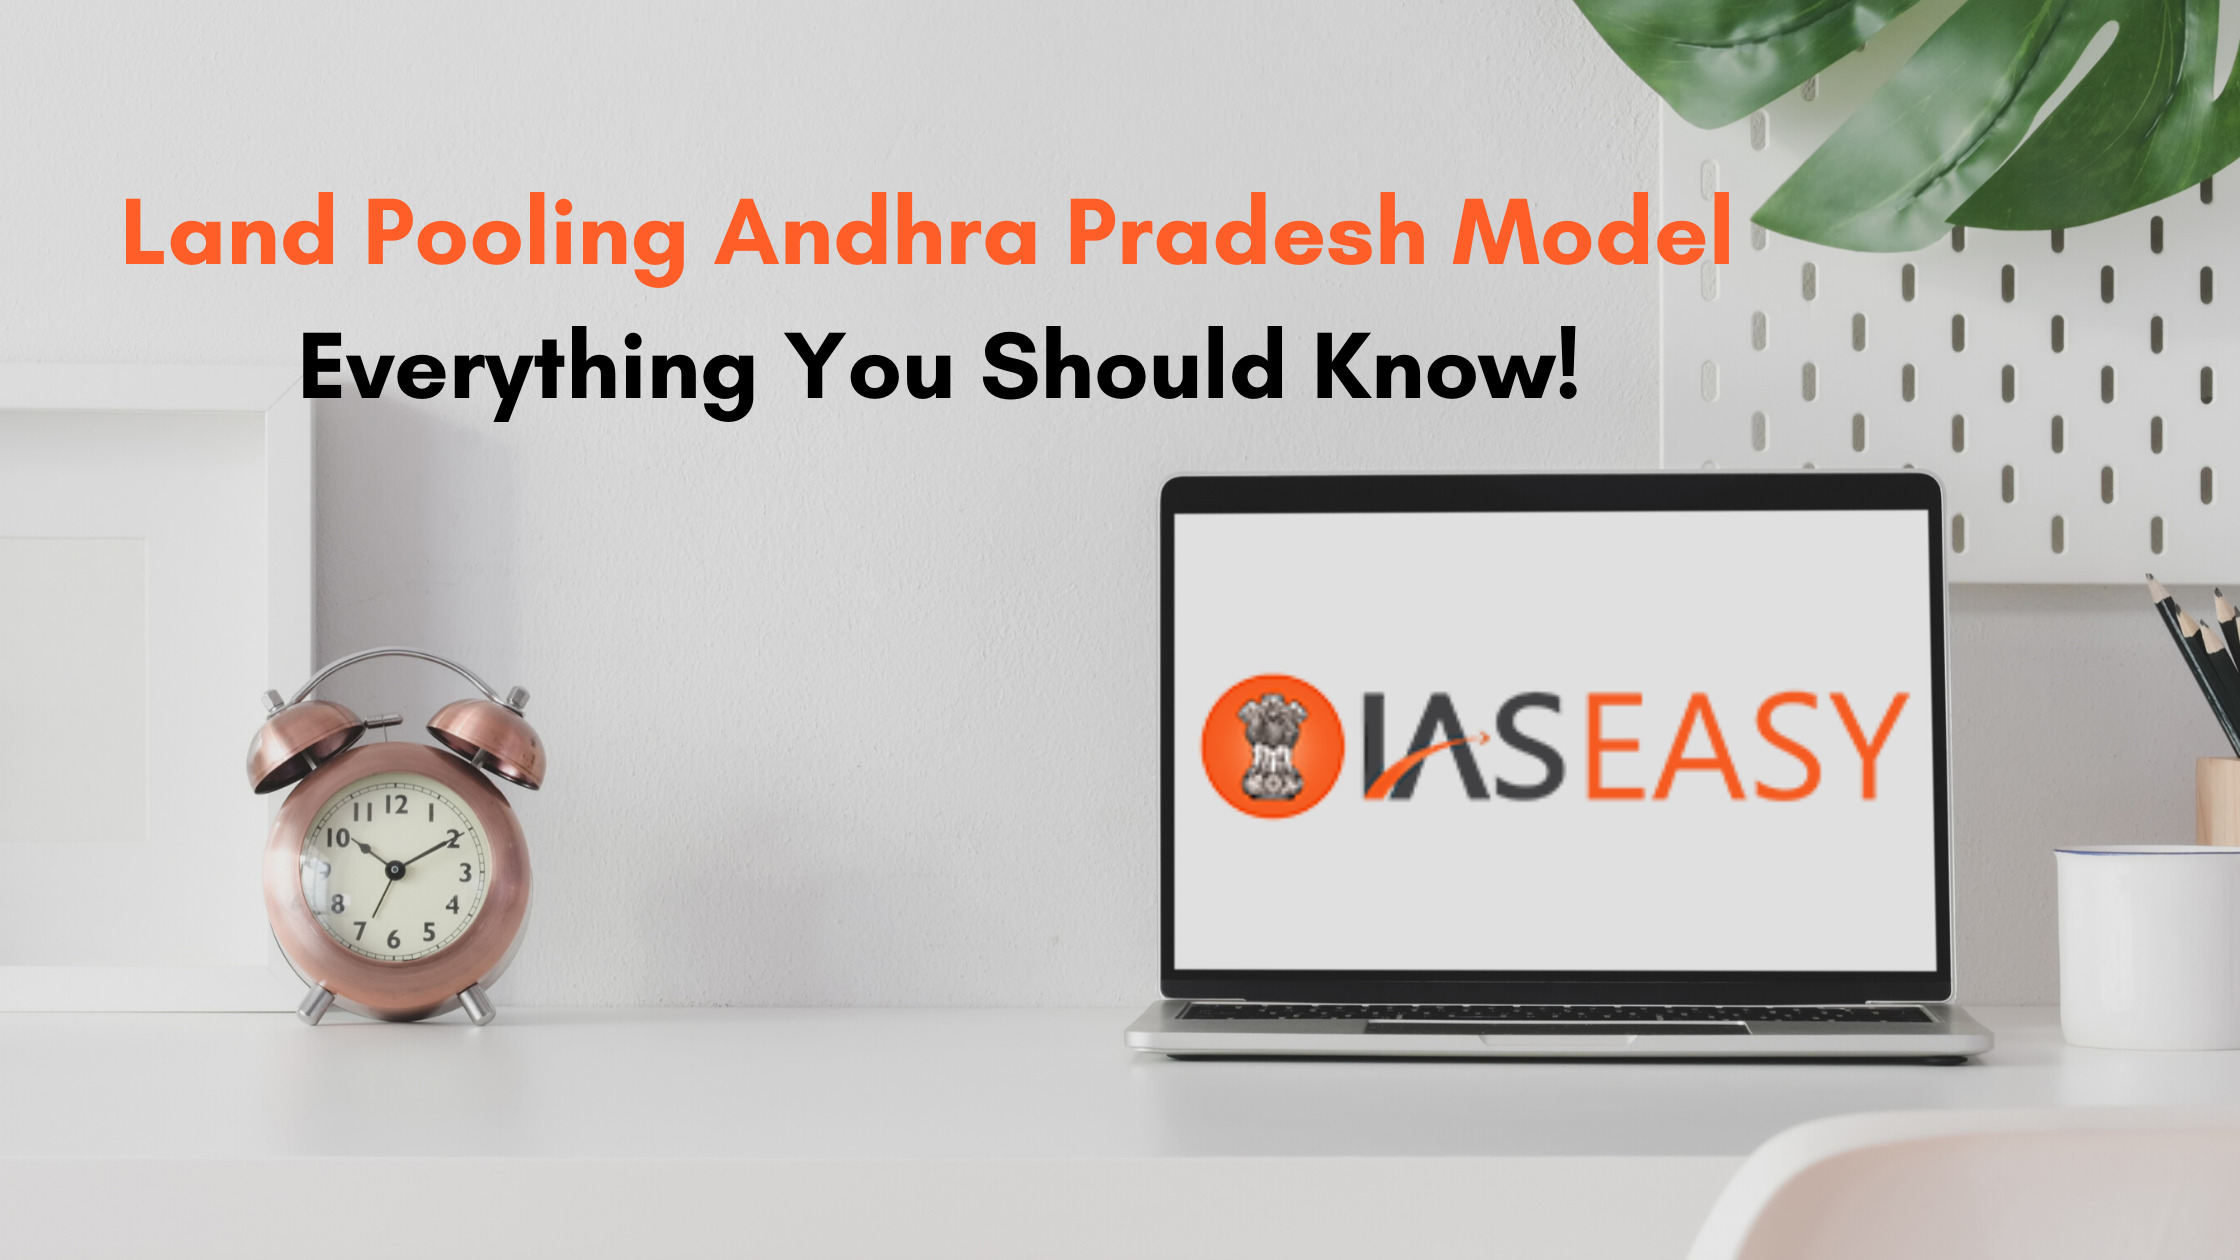 Land Pooling Andhra Pradesh Model - Everything You Should Know!